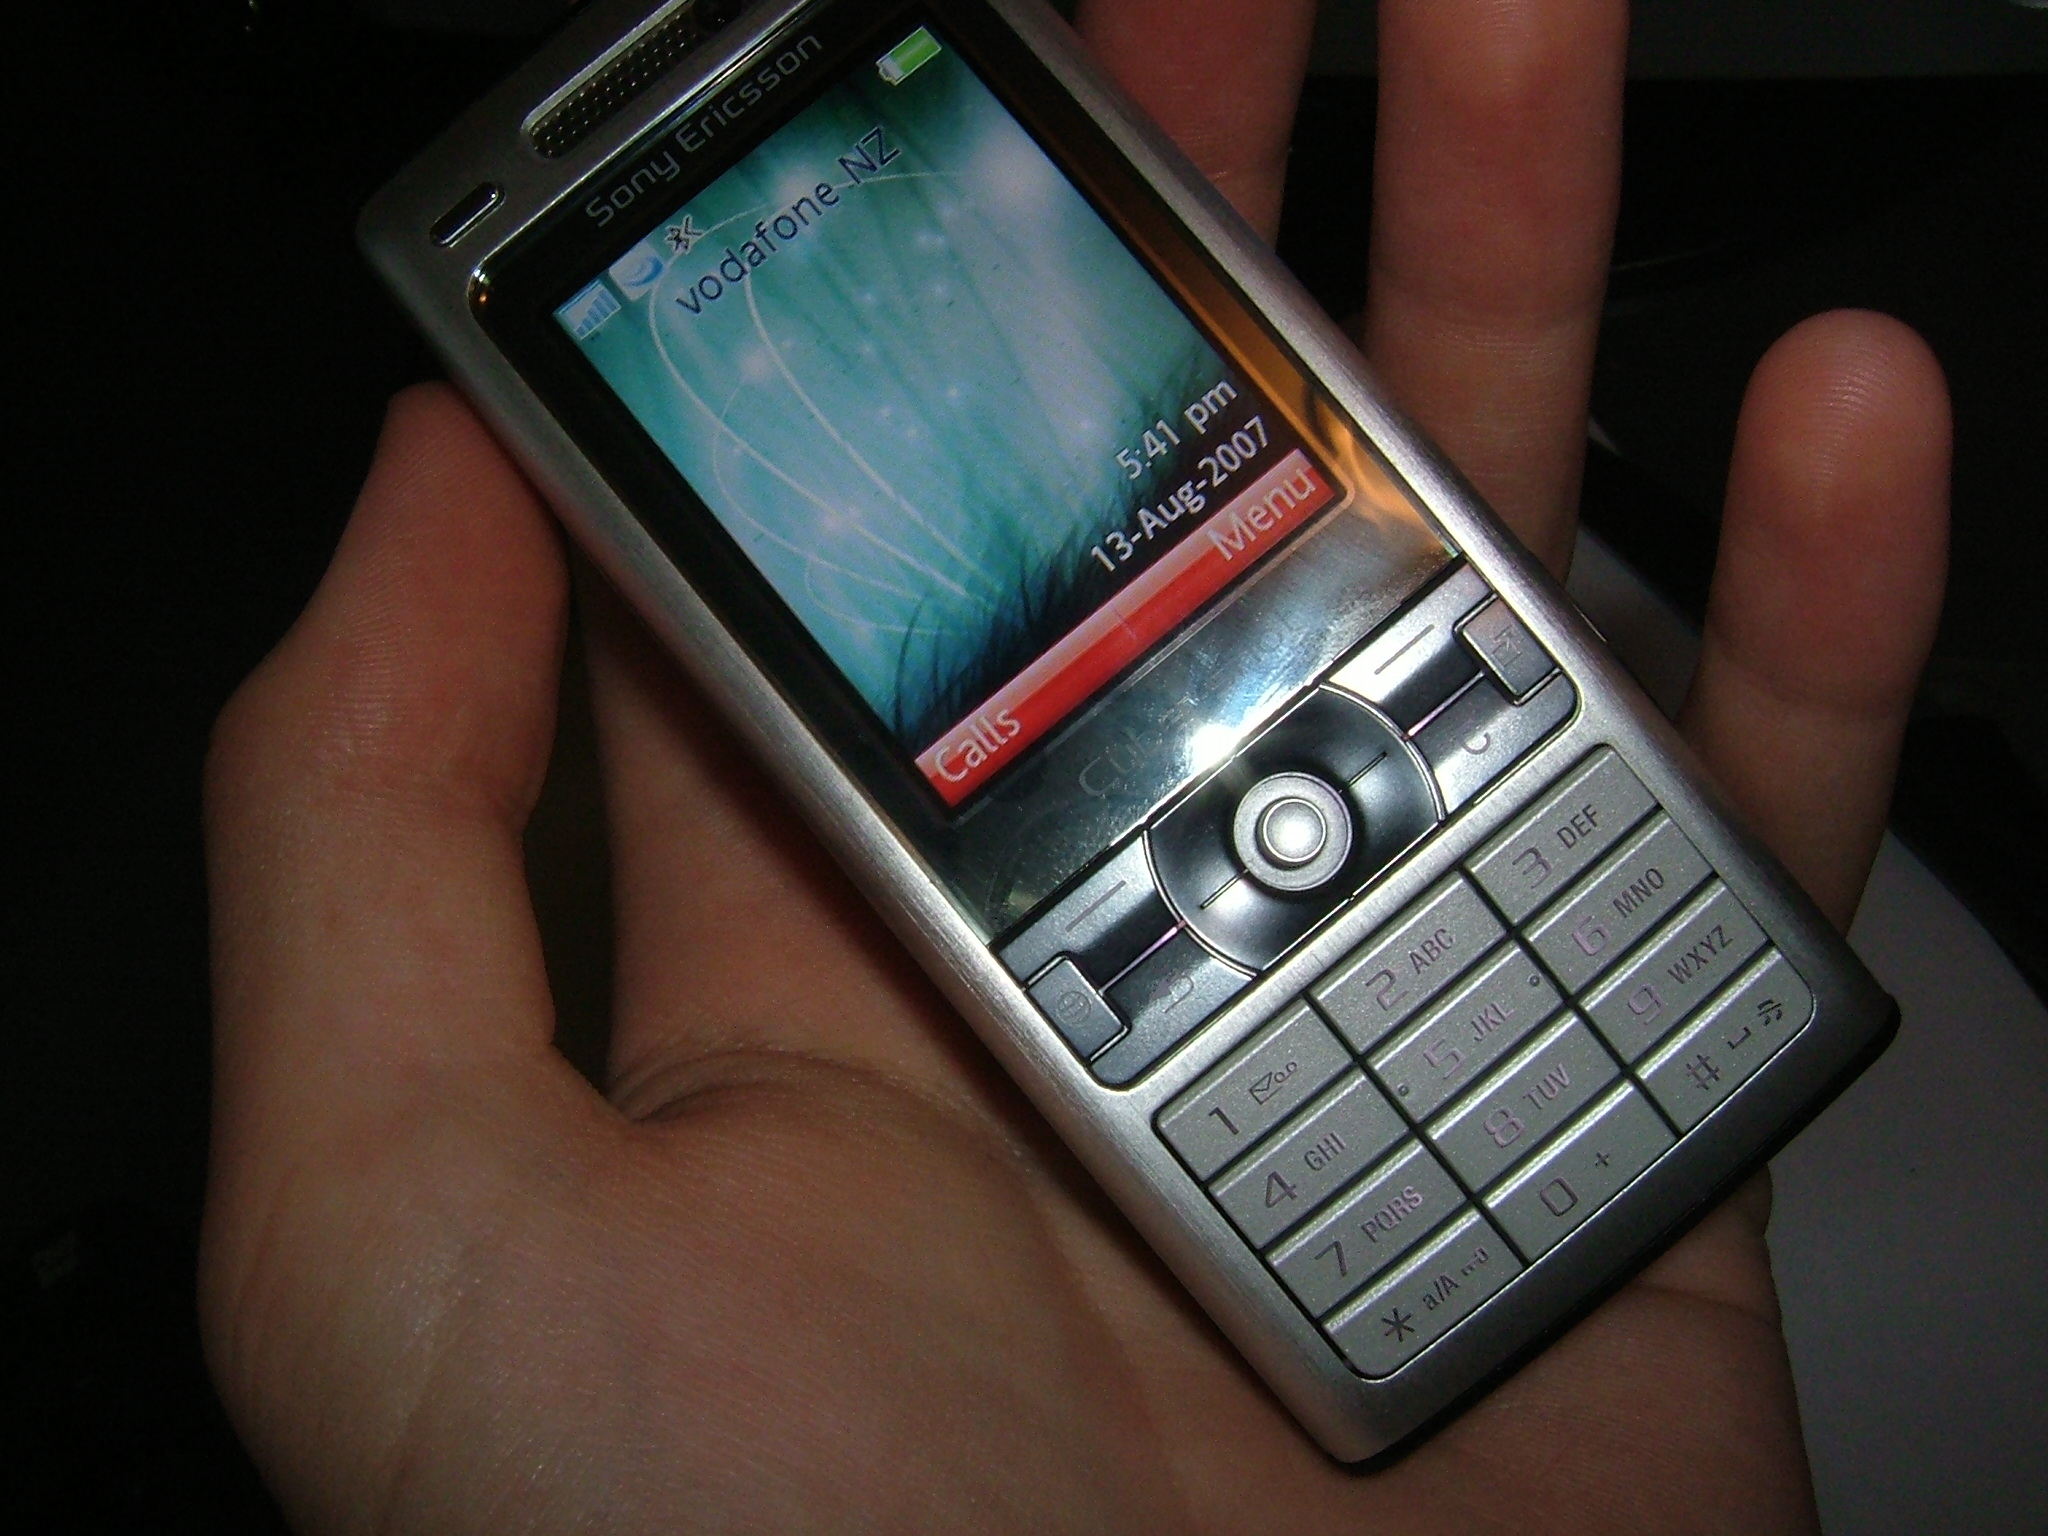 application sony ericsson wt13i